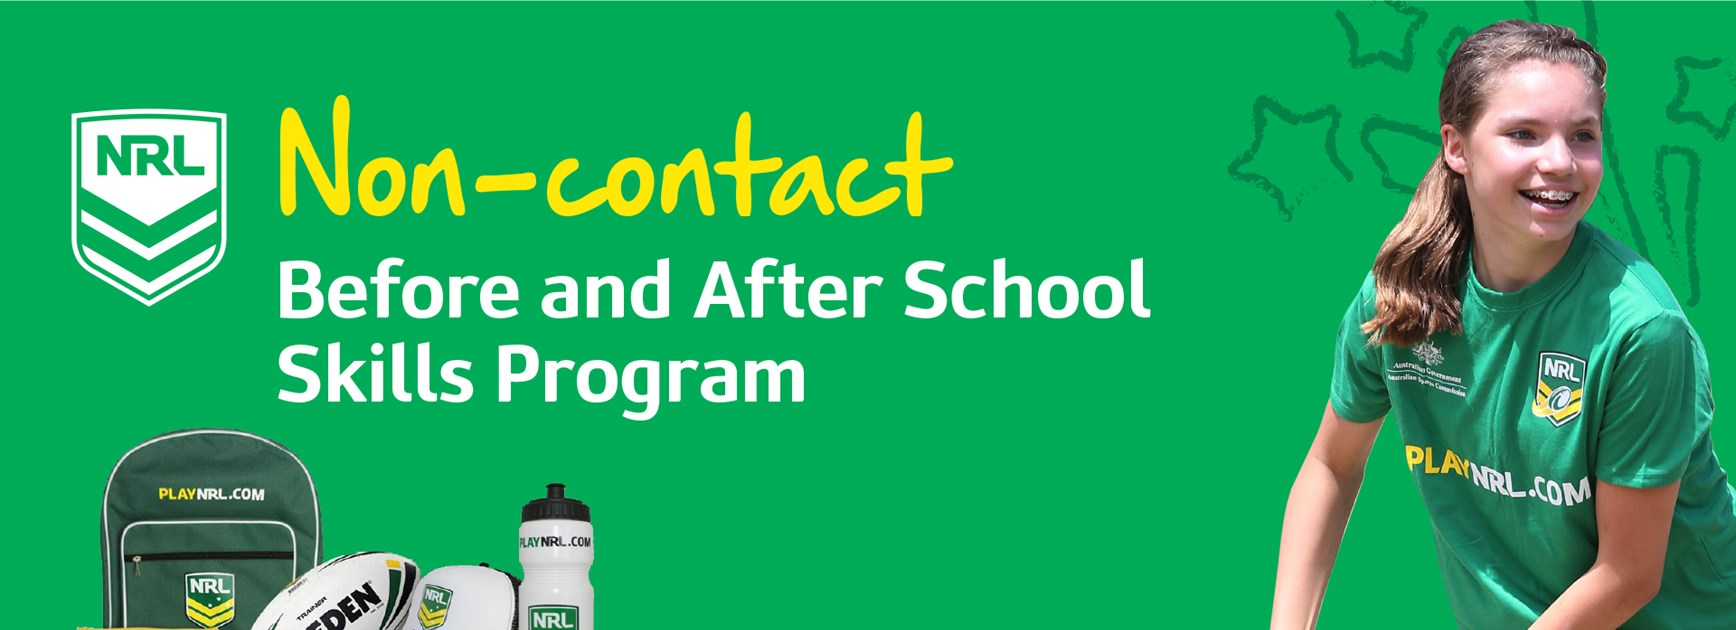 Non-contact Before and After School Skills Program